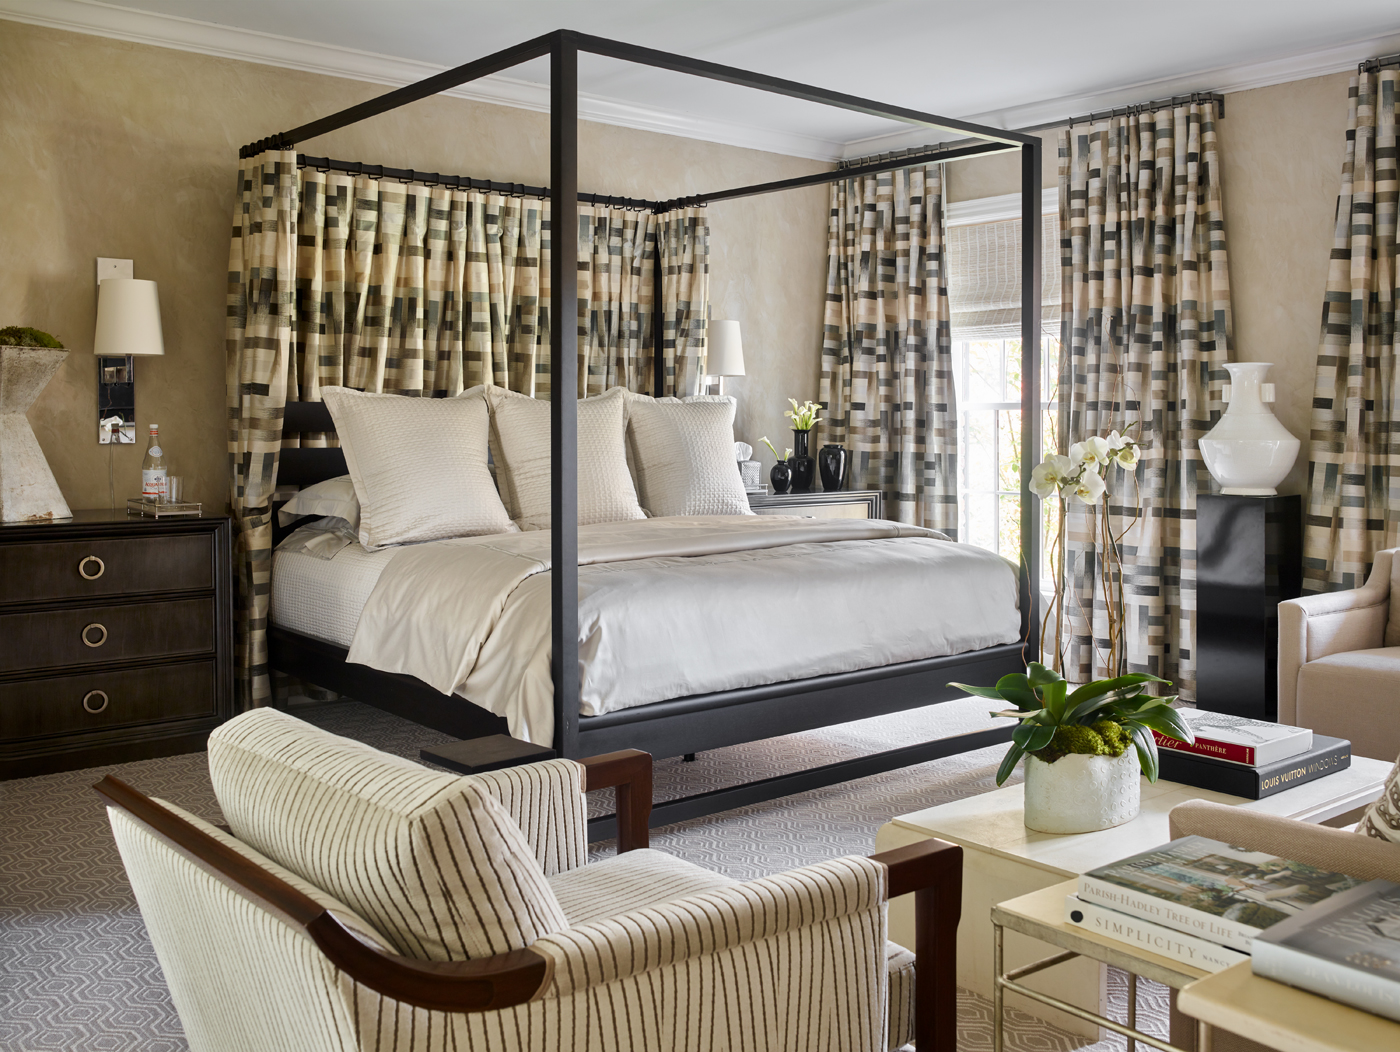 Bedroom with Calvin Klein Home canopy bed draped in Fantasque Bakst from Osborne & Little; Christian Liaigre sconces | Savage Interior Design